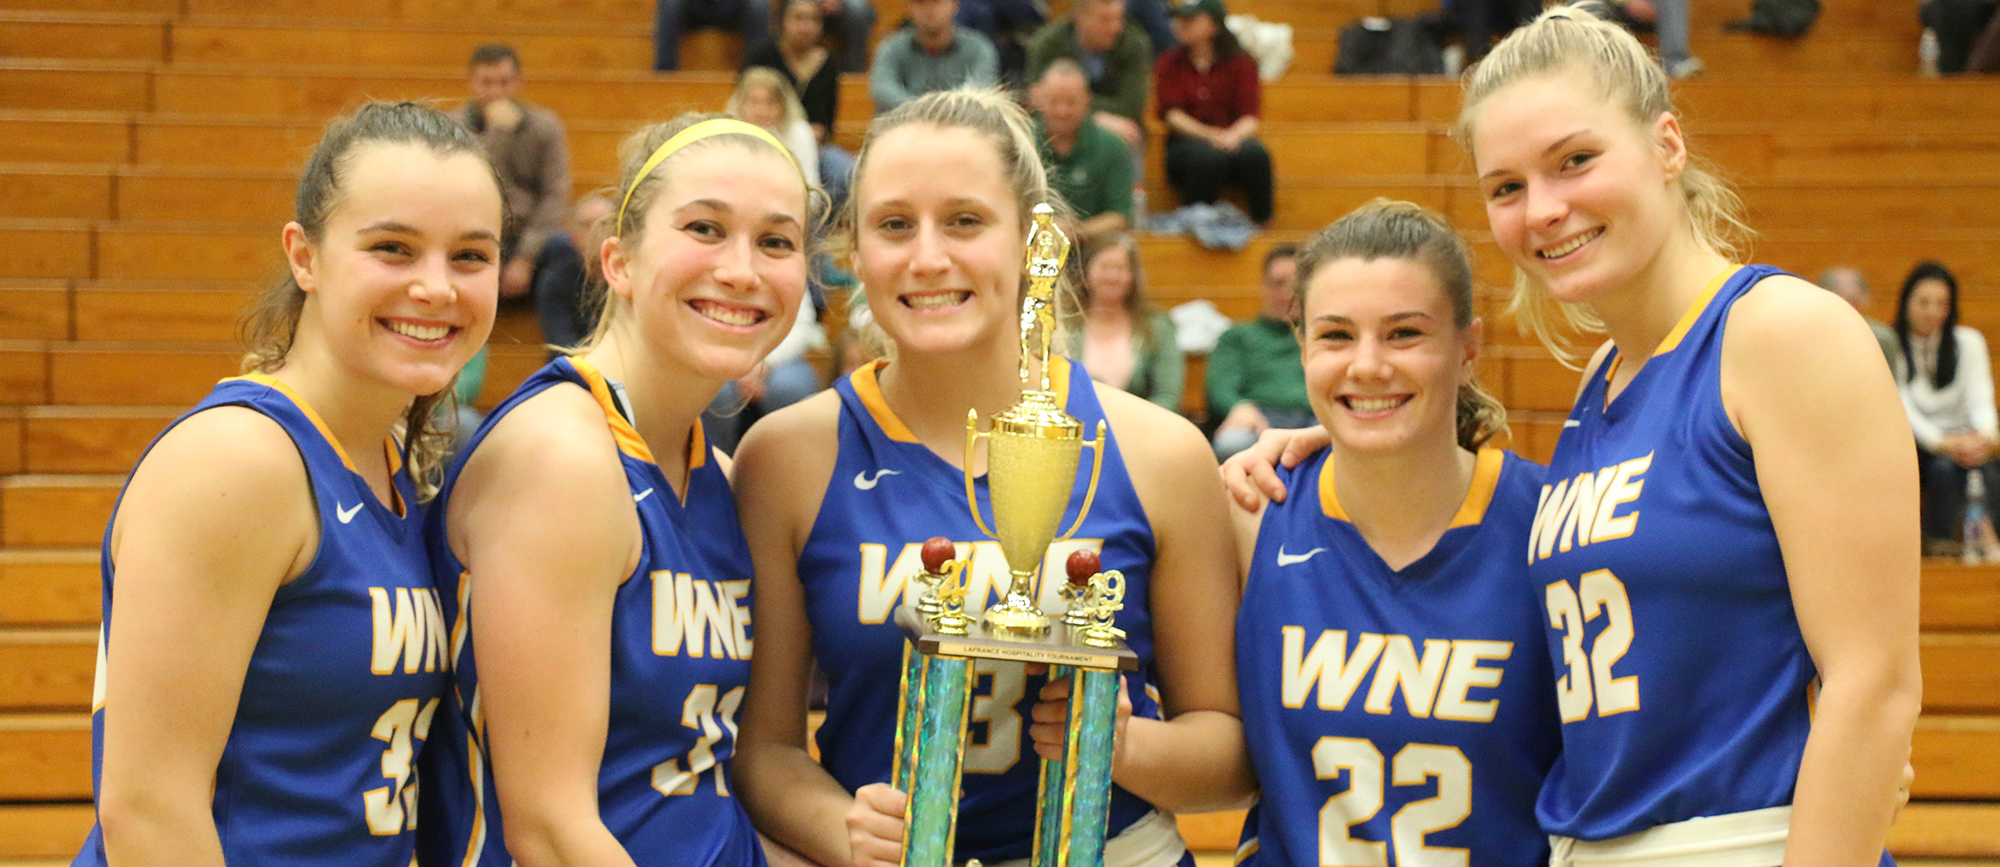 Western New England seniors (from left) Sydney Fisher, Meghan Orbann, Alyssa Stefanelli, Emily Farrell and Courtney Carlson after defeating Babson in the Lafrance Hospitality Tournament championship game on Sunday.